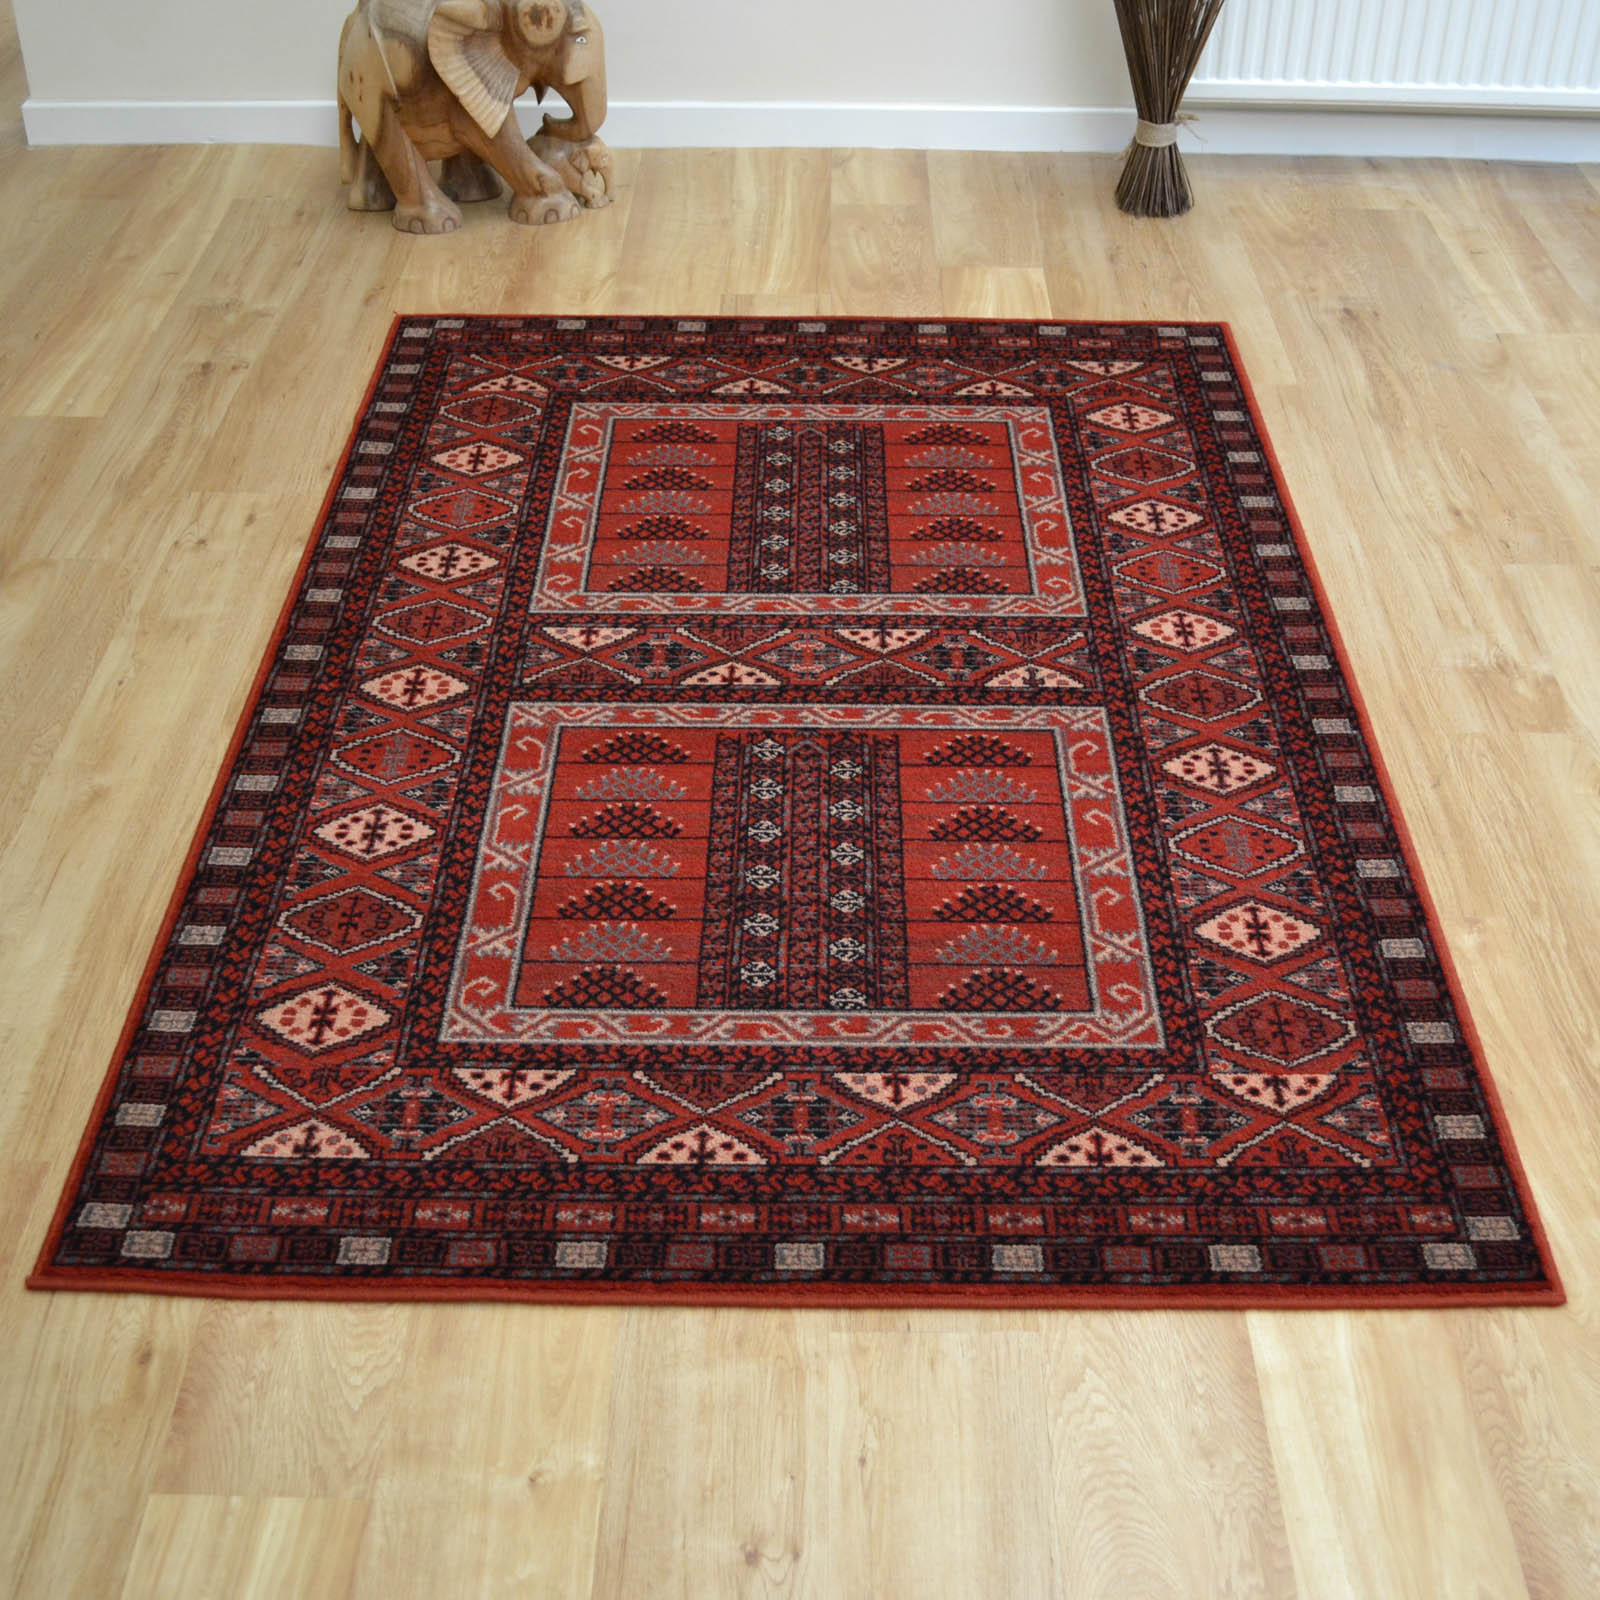 Afghan Rugs 7901 Traditional Wool in Red